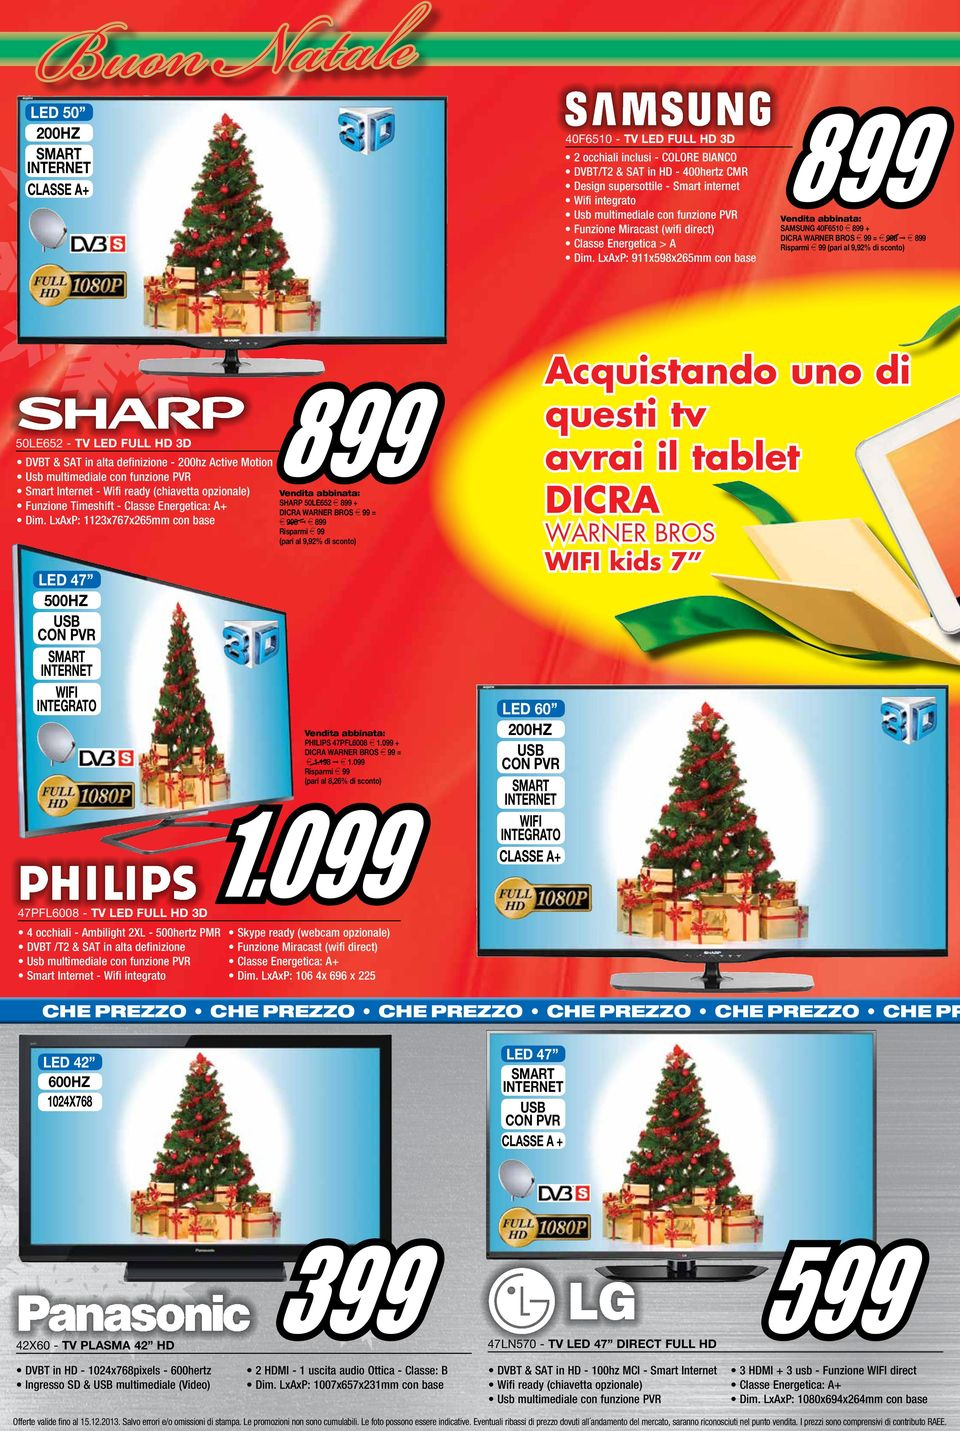 LxAxP: 1123x767x265mm con base 899 SHARP 50LE652 e 899 + DICRA WARNER BROS e 99 = e 998 e 899 Risparmi e 99 (pari al 9,92% di sconto) led 47 500hz USB con pvr wifi integrato philips 47pfl6008 e 1.